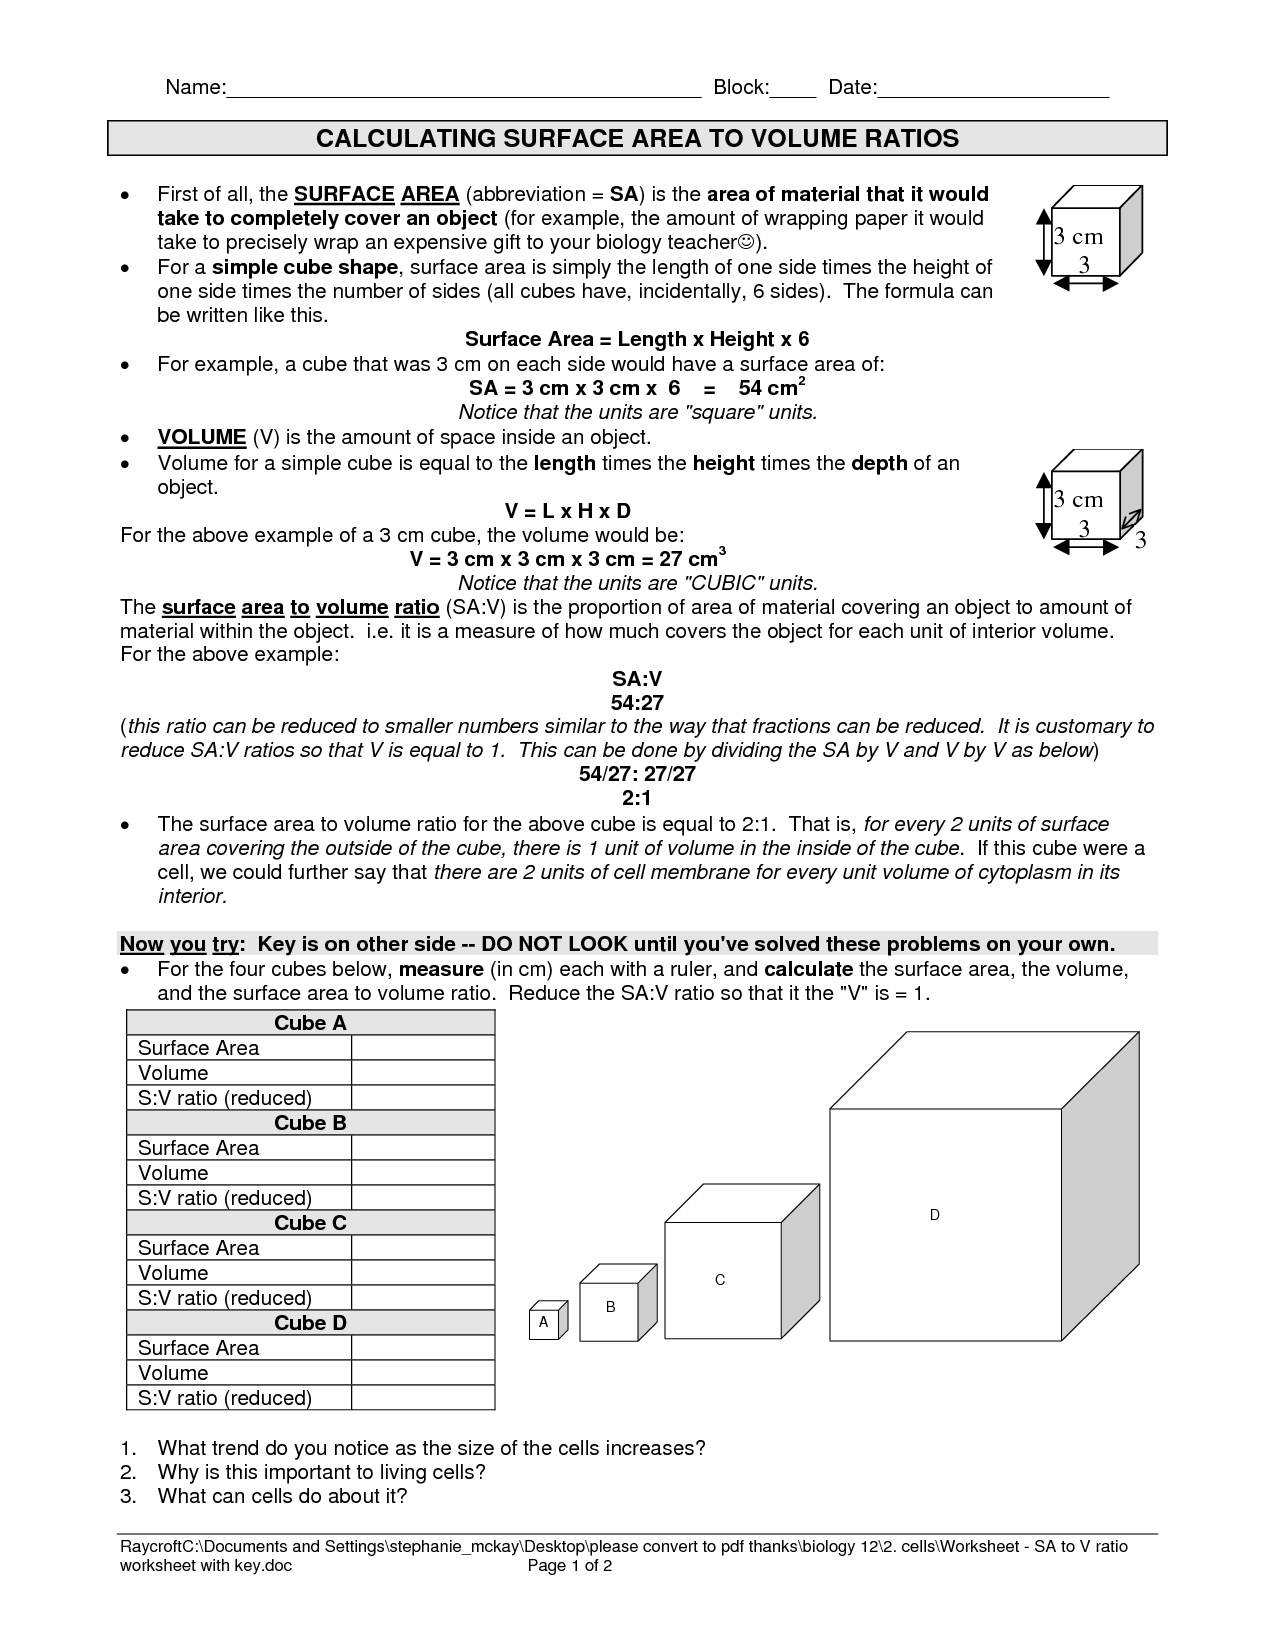 Surface Area To Volume Ratio Cells Worksheet